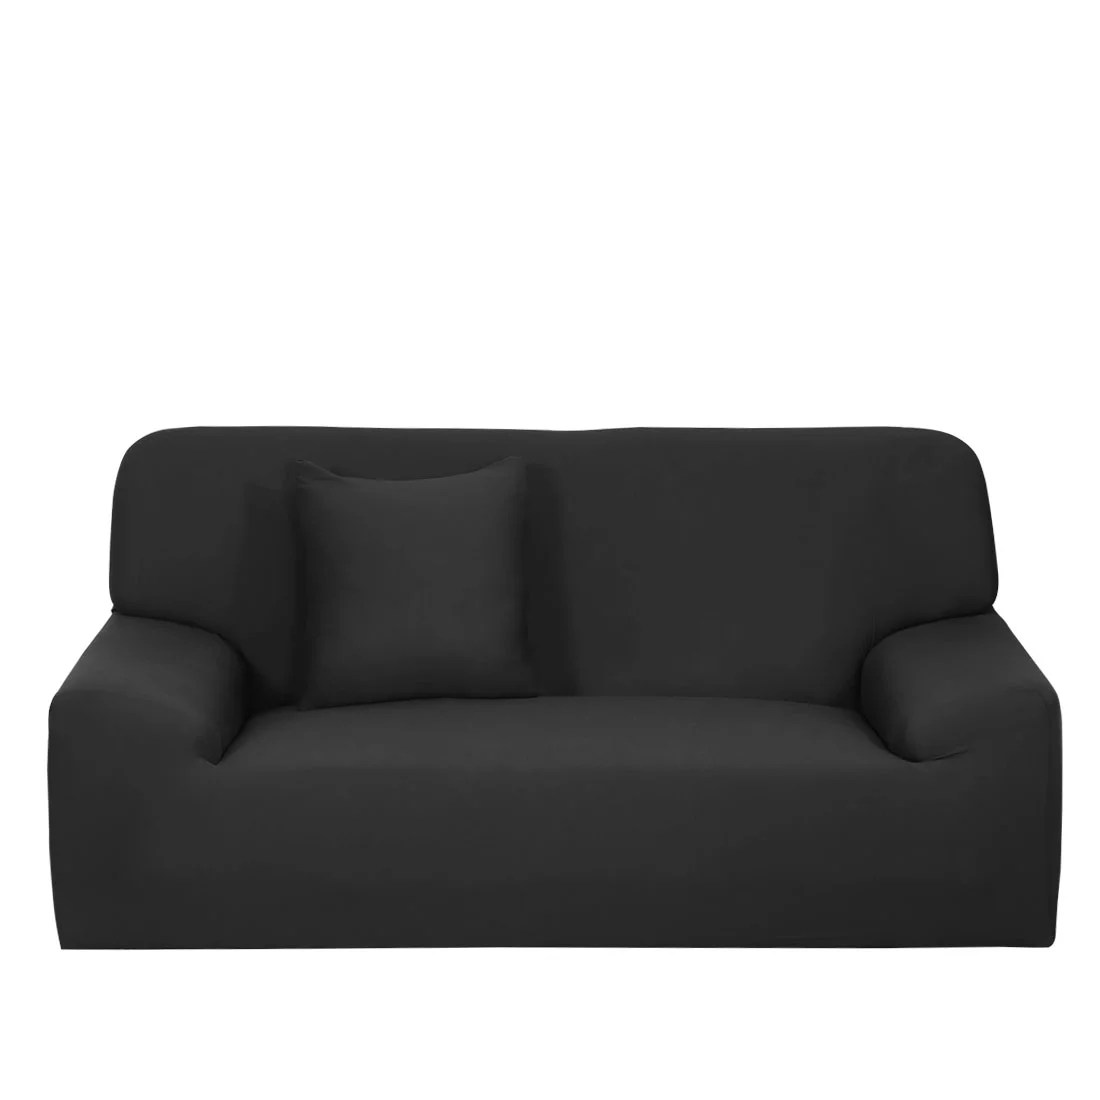 Stretch Sofa Cover Chair Loveseat Couch Slipcovers Protector Black Walmart Com Walmart Com